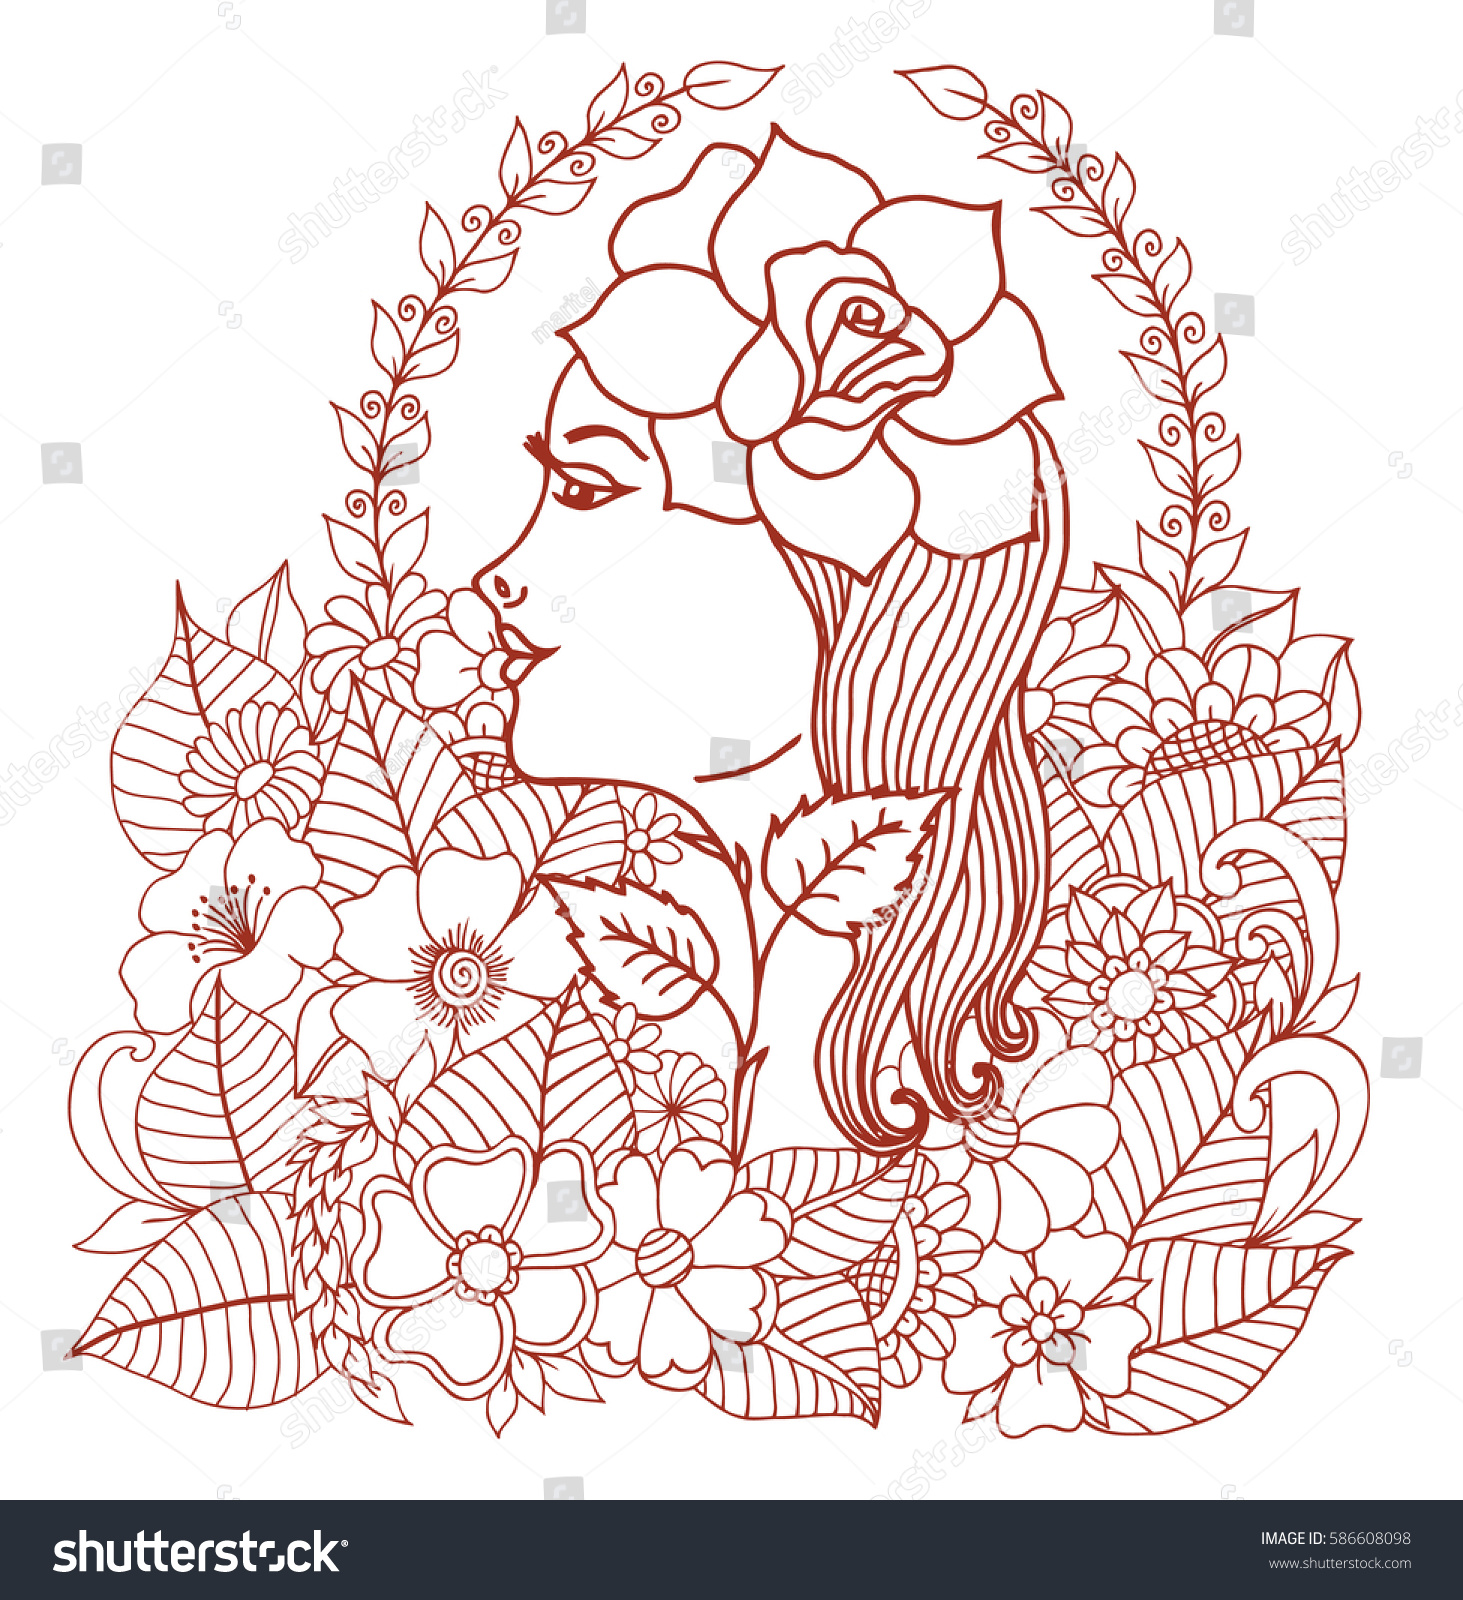 Do anti stress colouring books work - Vector Illustration Girl With A Rose Surrounded By Flowers Work Done By Hand Book